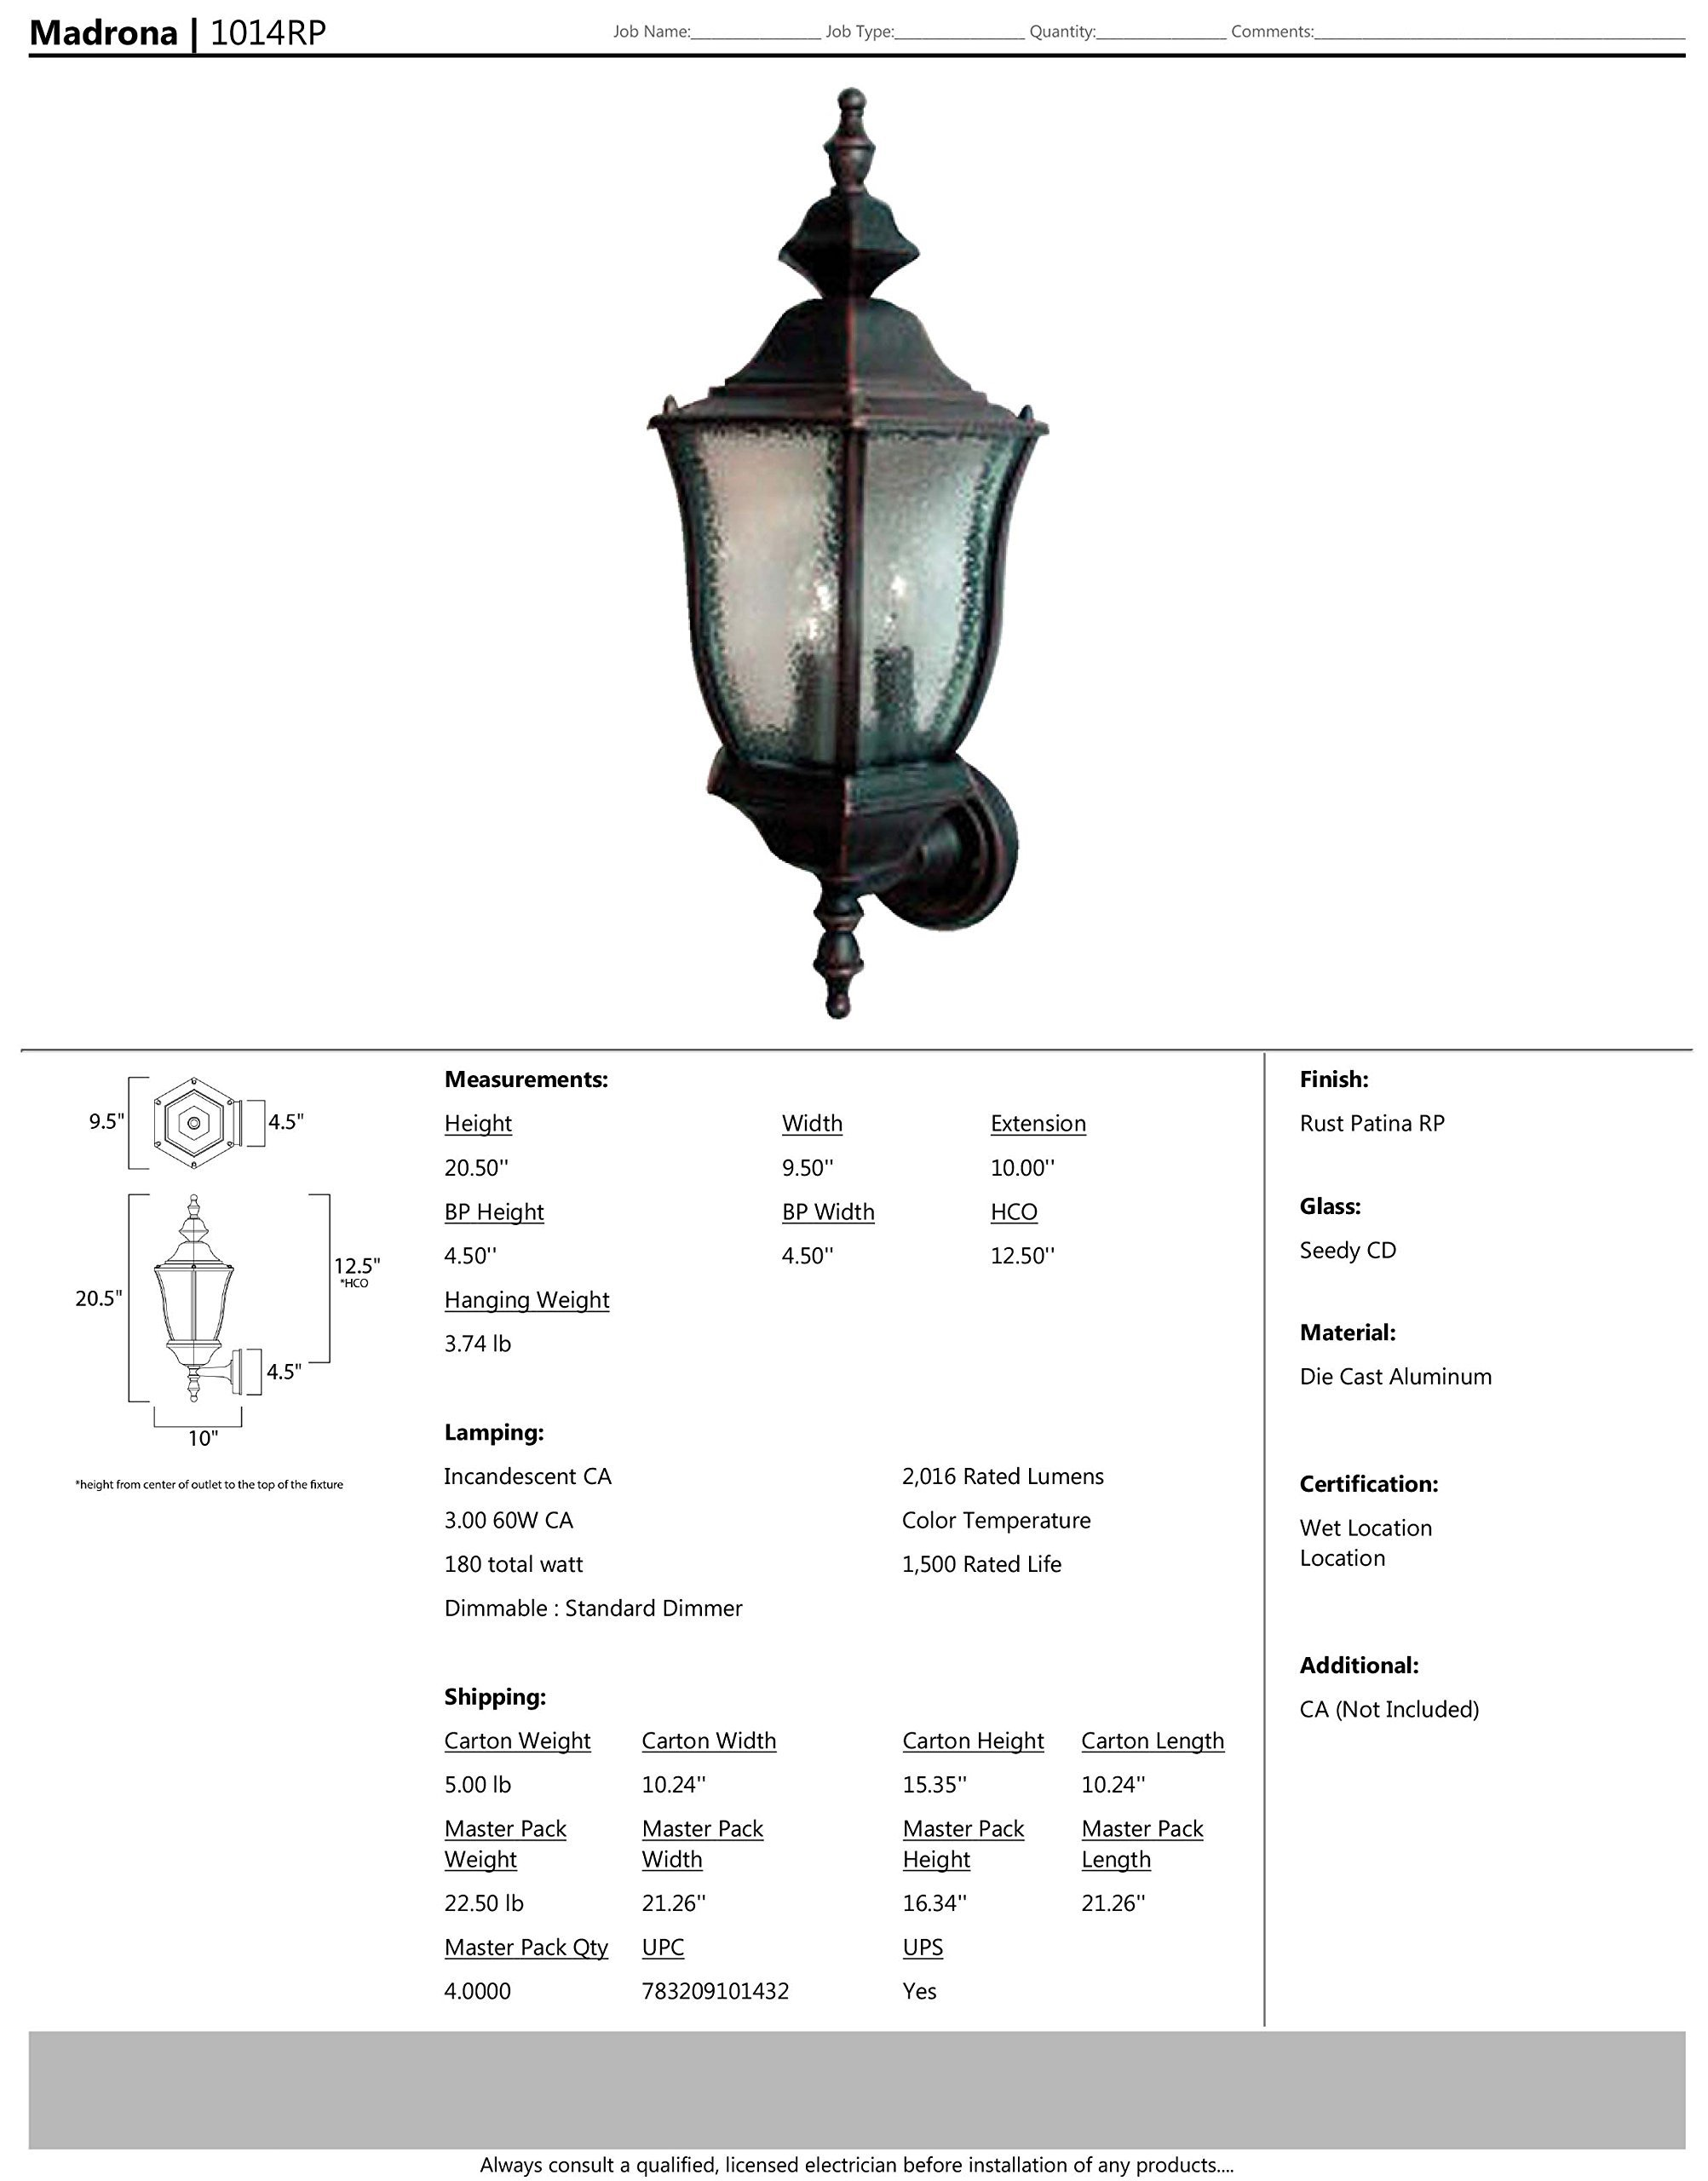 Maxim 1014RP Madrona Cast 3-Light Outdoor Wall Lantern, Rust Patina Finish, Seedy Glass, CA Incandescent Incandescent Bulb , 60W Max., Dry Safety Rating, Standard Dimmable, Frosted Glass Shade Material, Rated Lumens by Maxim Lighting (Image #2)